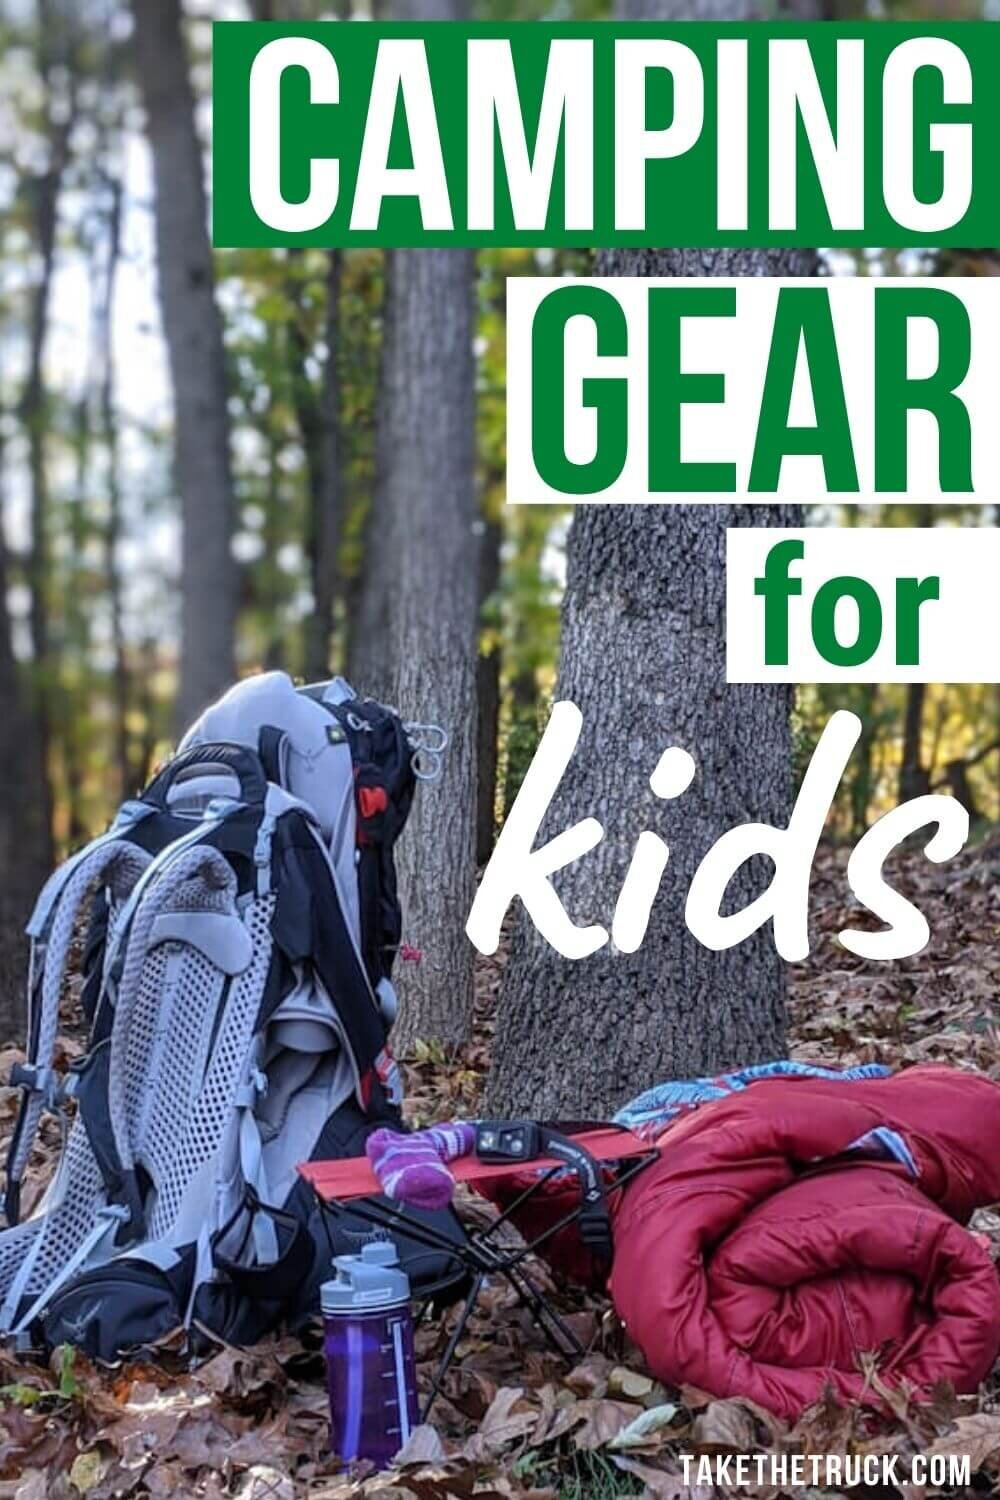 Looking for the best kids' camping gear to buy for the children in your life? Check out more than 20 useful camping gear ideas that make great outdoor gear gifts for kids, from babies on up to teens.